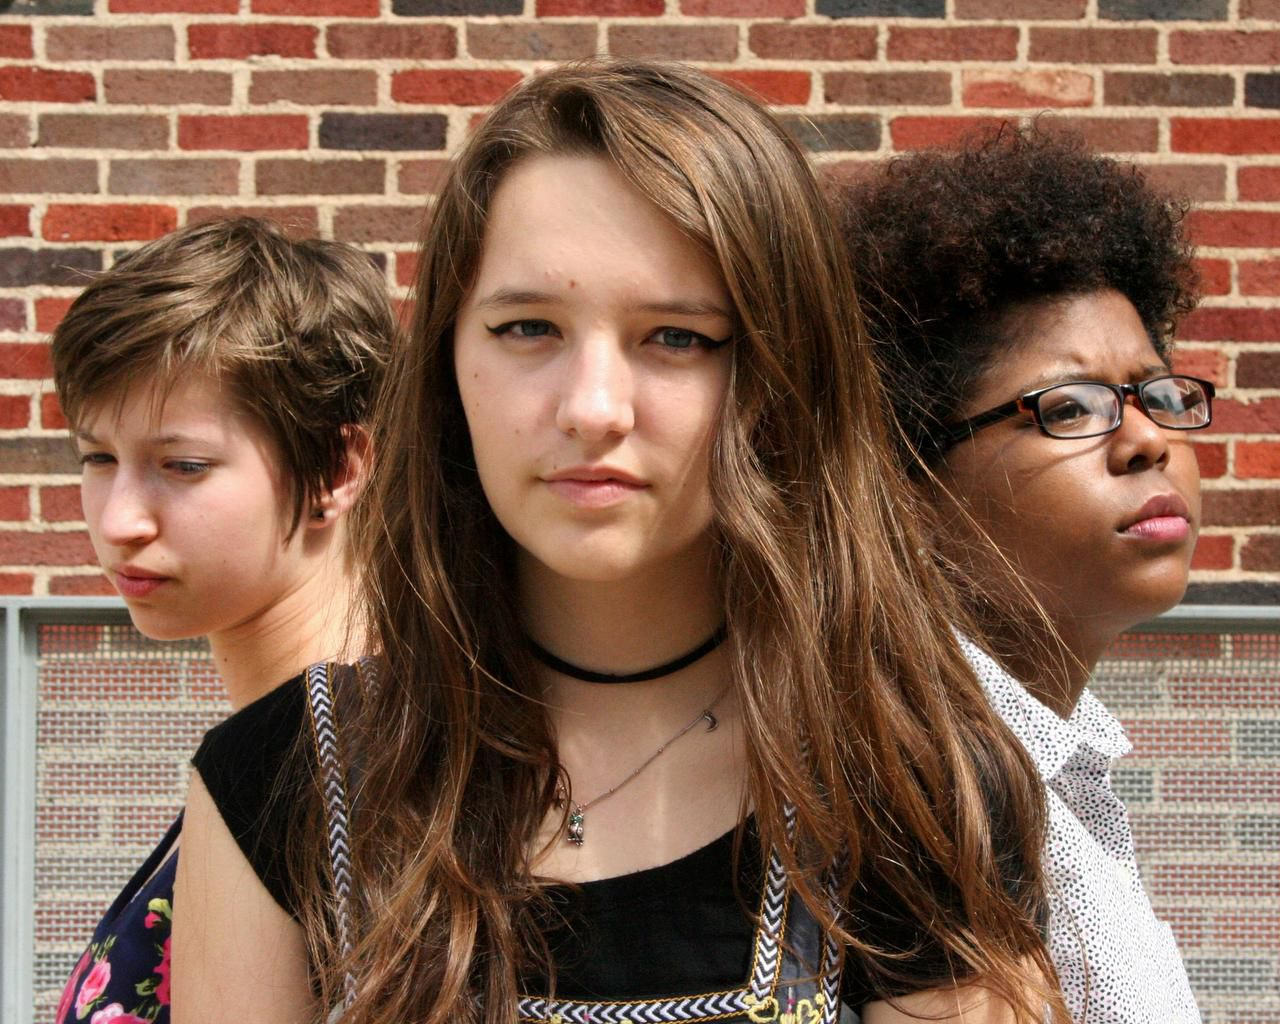 From left: Maya Pearson, Isabella Montague and Alexandria Lofton in Dangerous Things on Dark Nights by CrossOver Arts